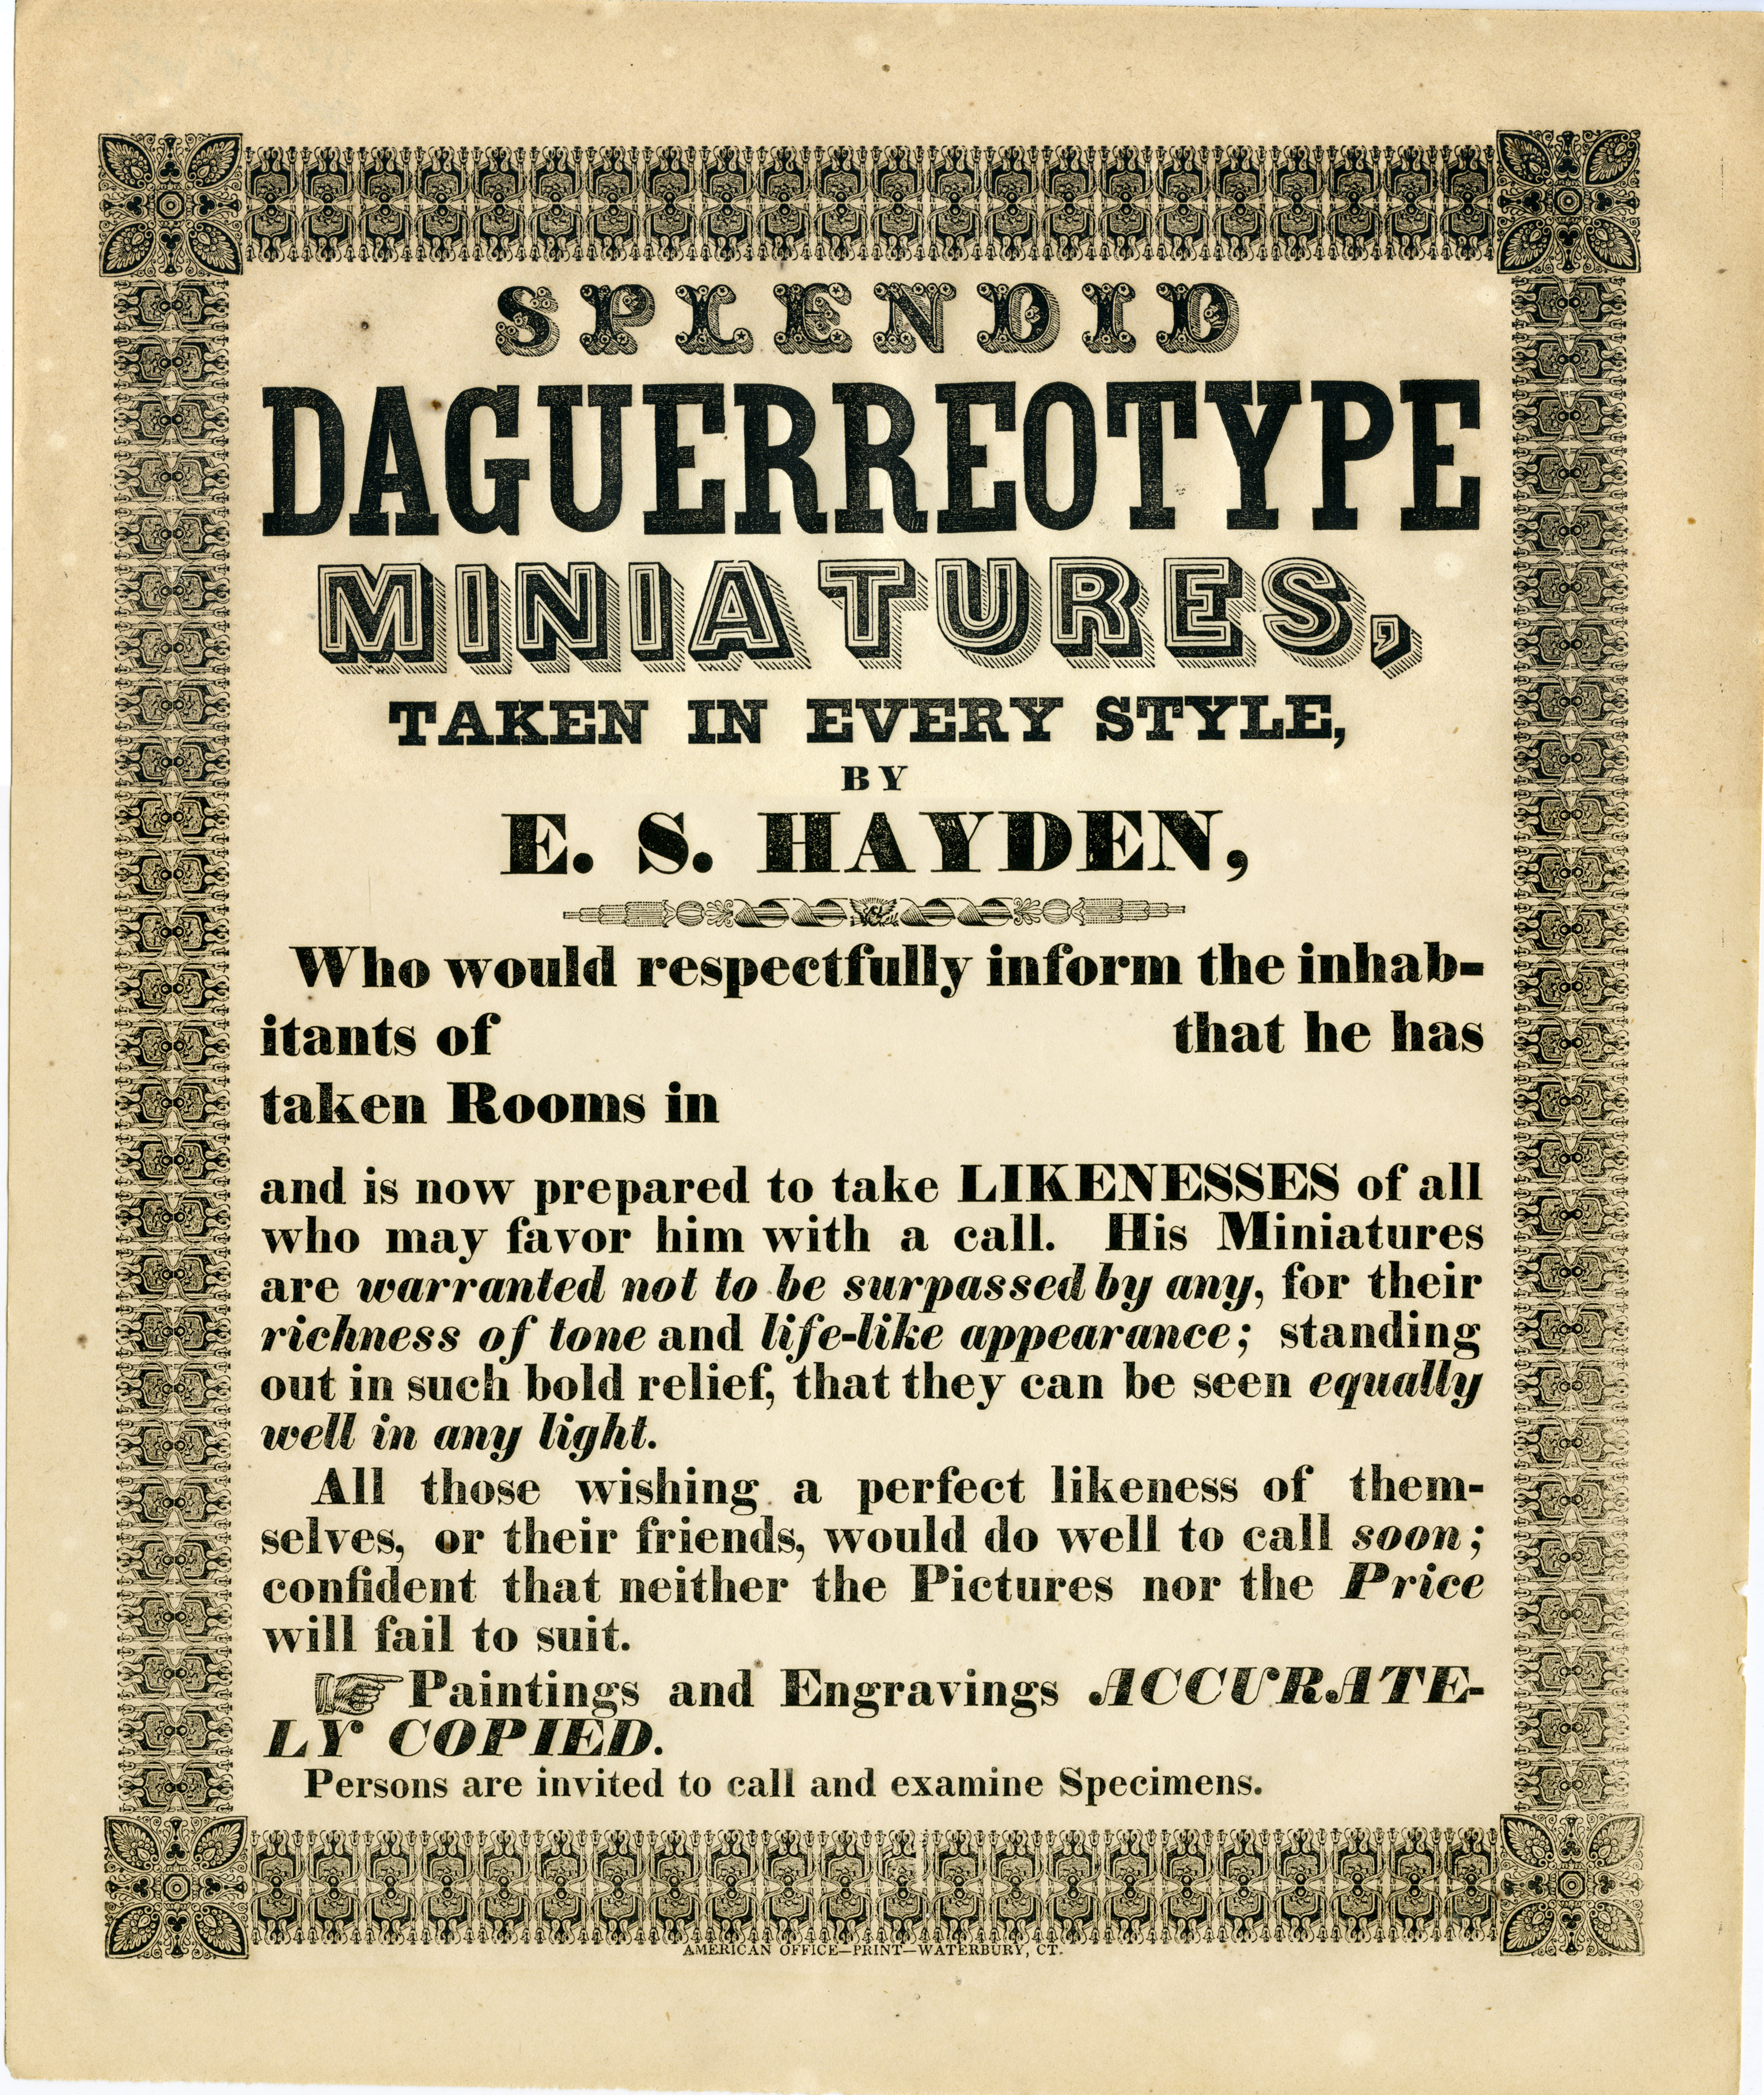 Depiction of Advertisement for E. S. Hayden's daguerreotypes, ca.1850